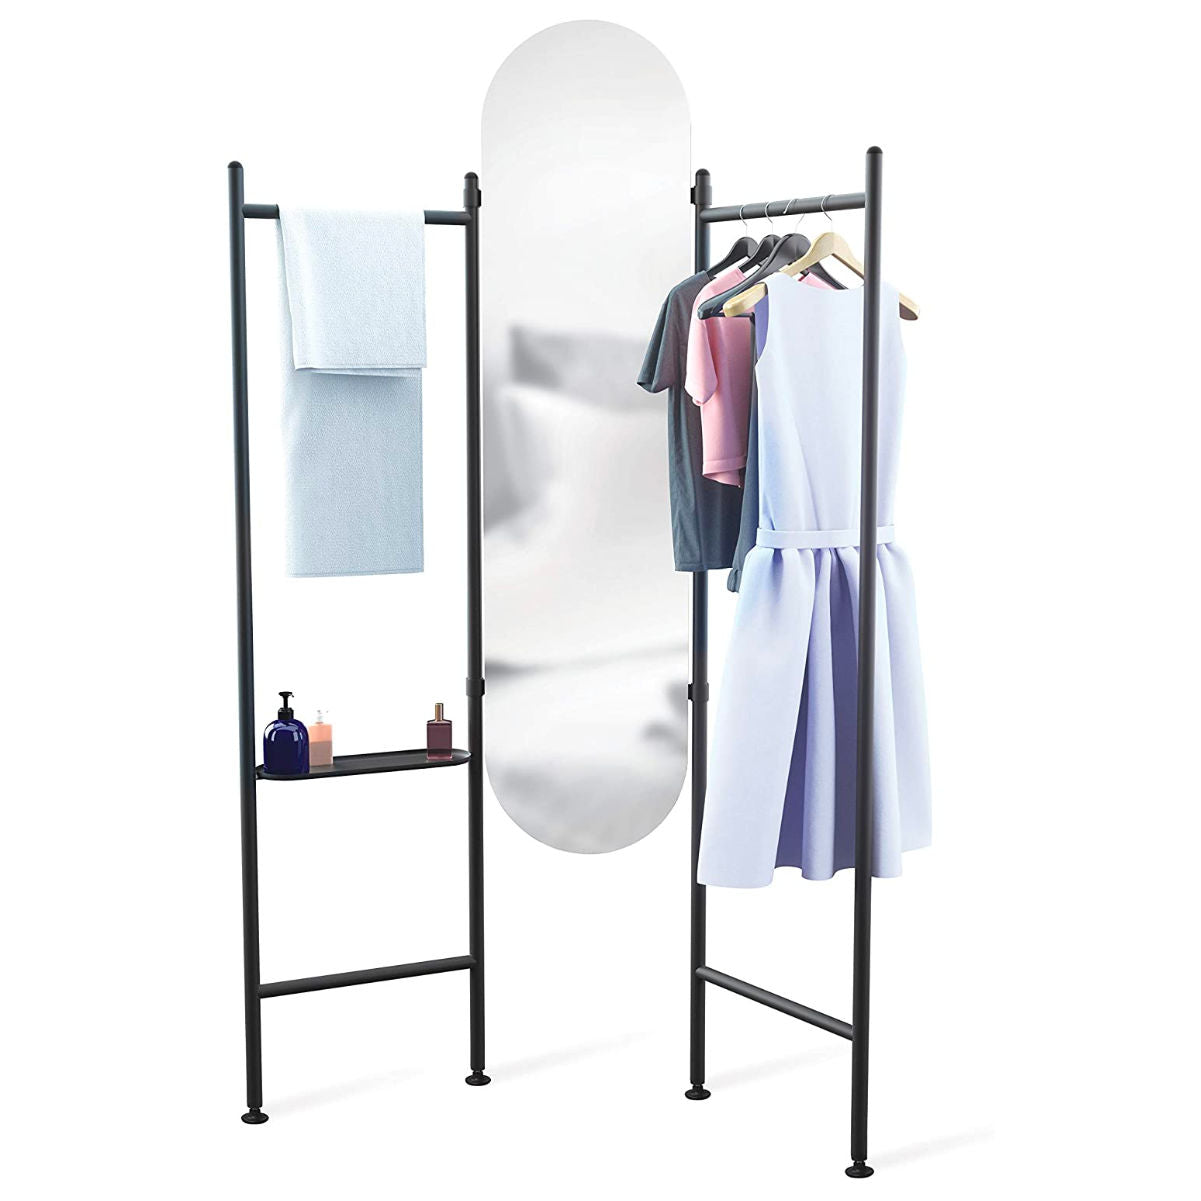 Umbra Vala floor mirror and hanger, black